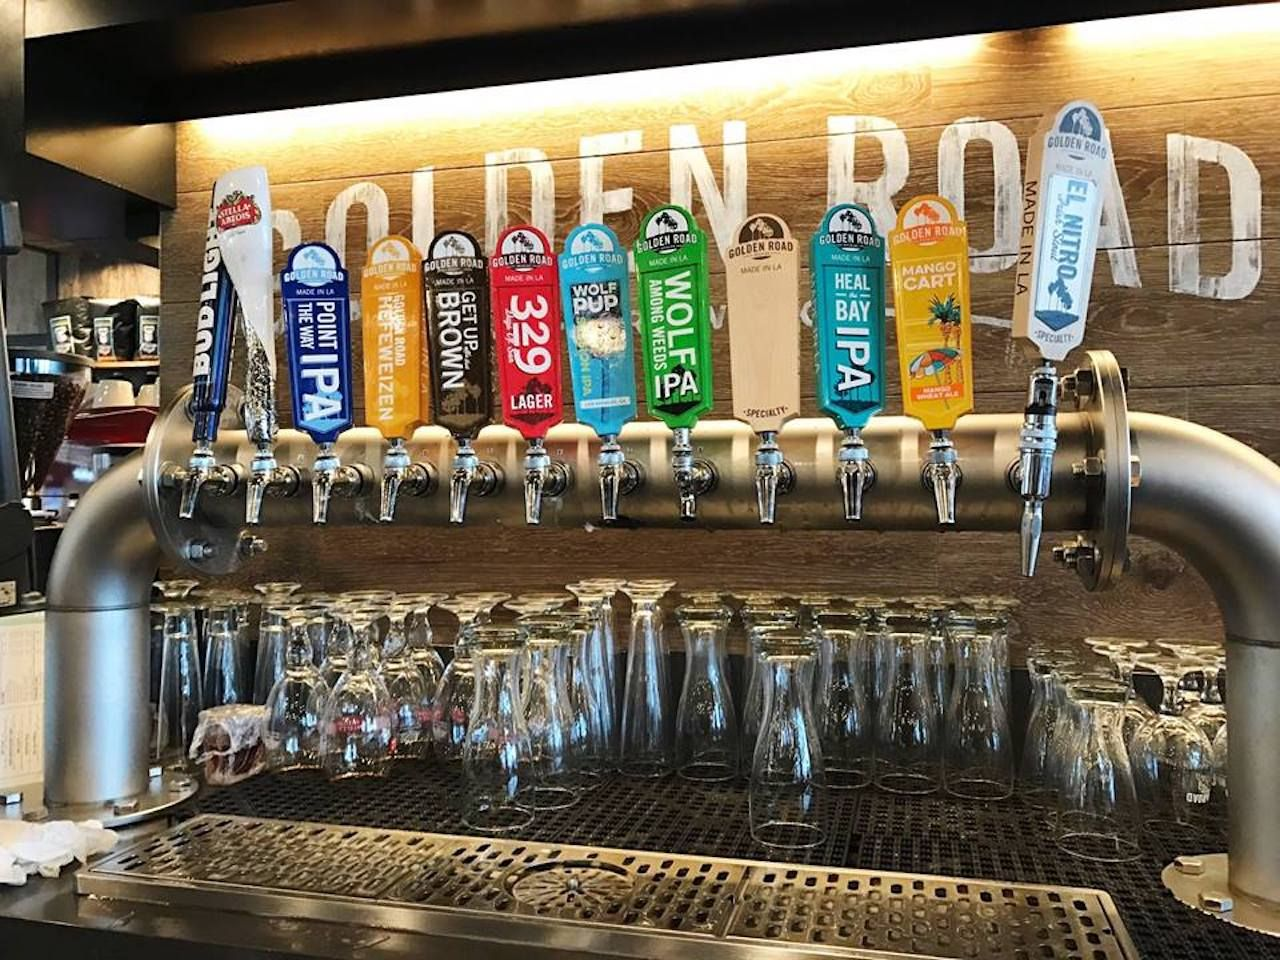 Beers on tap at an LAX bar